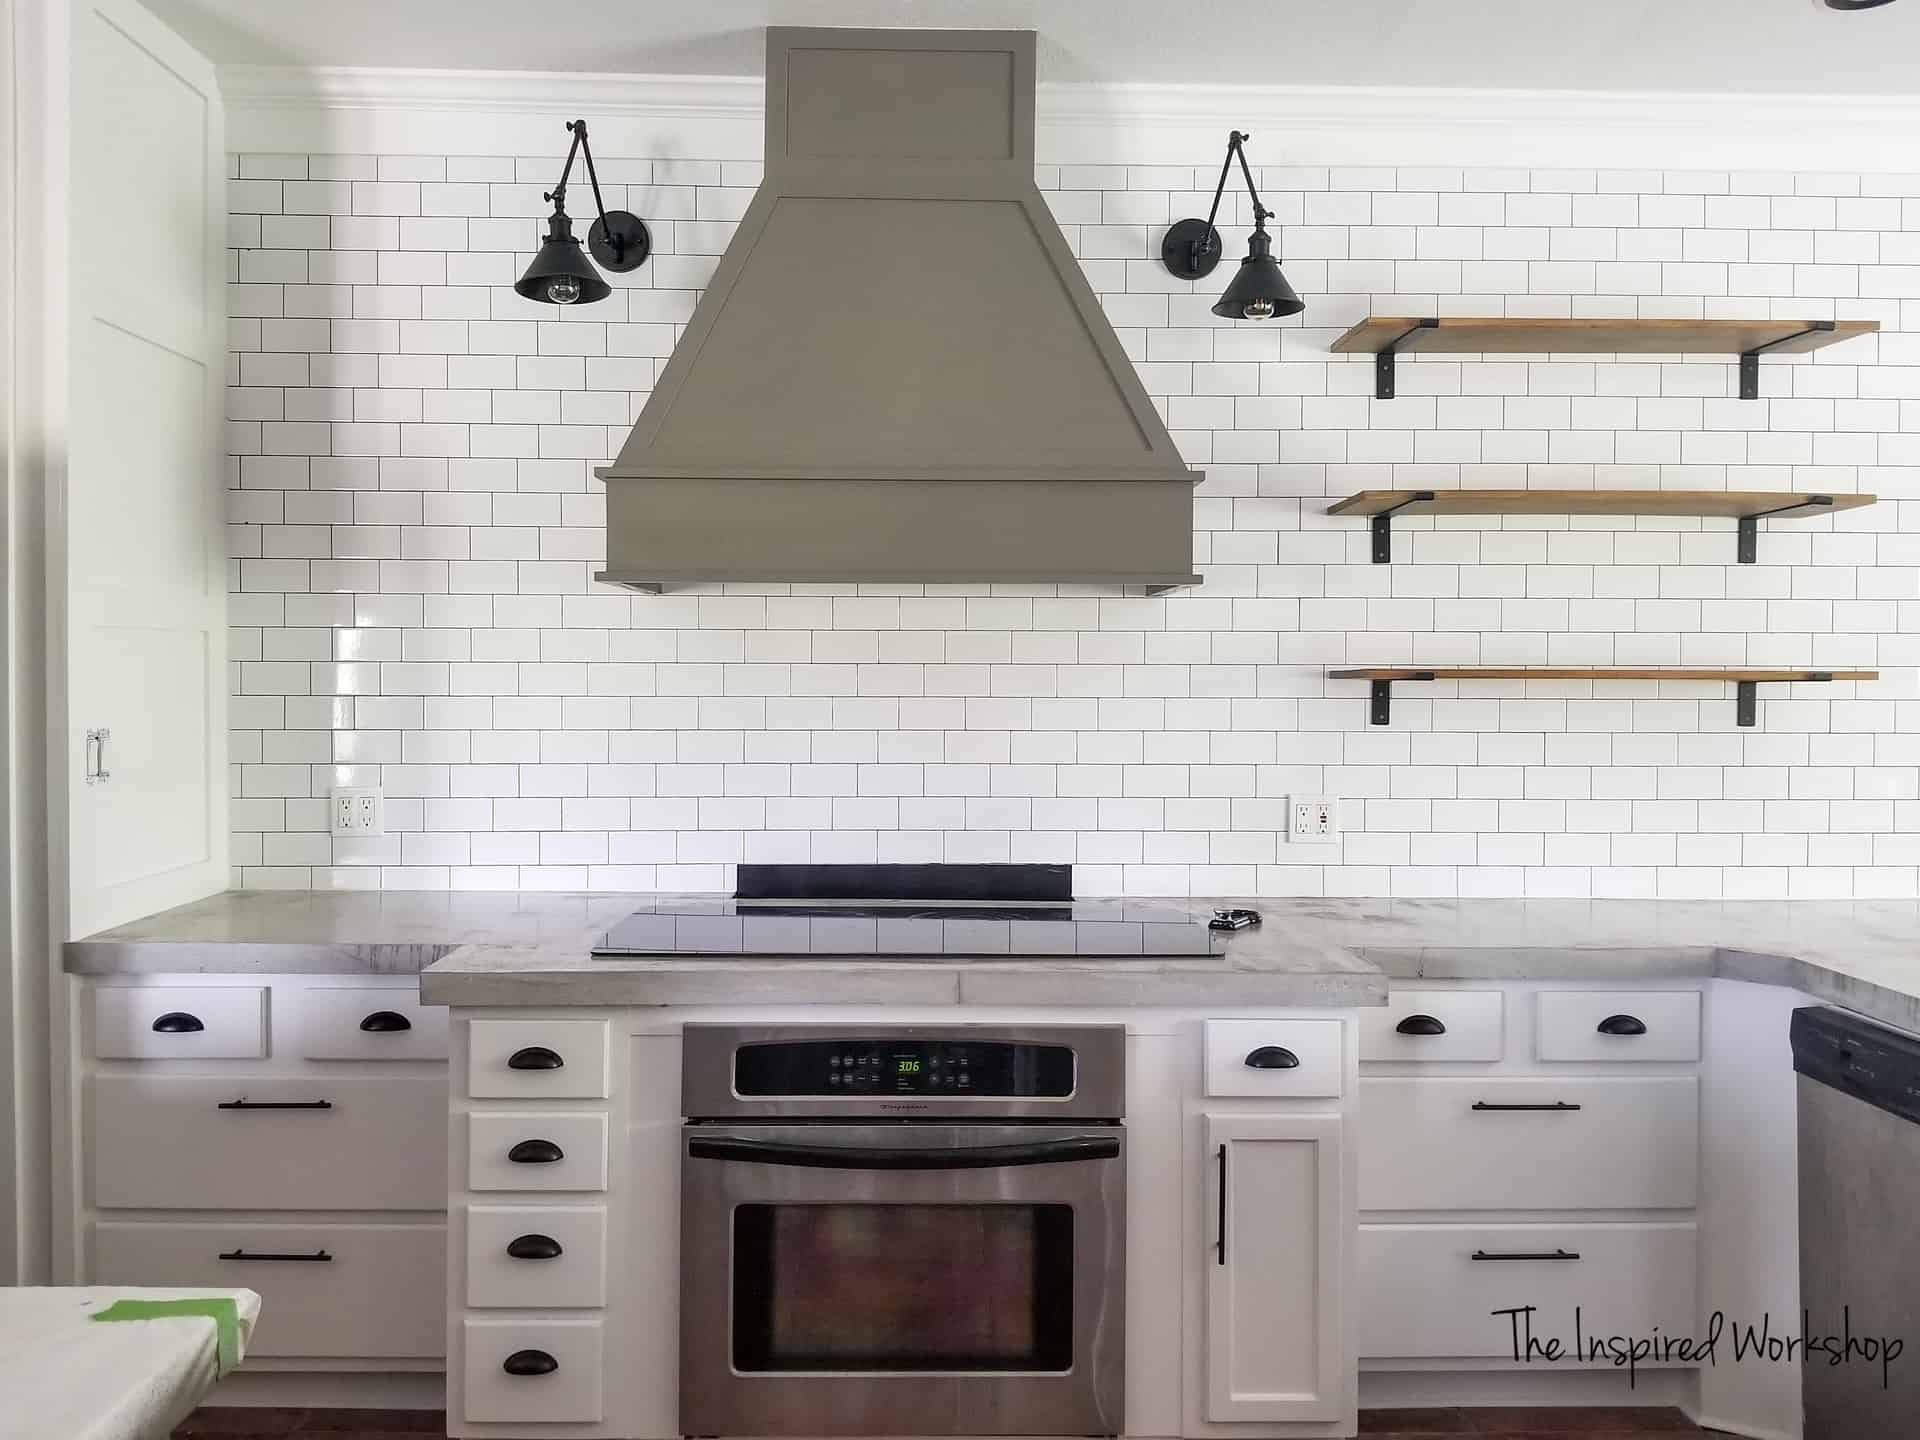 How To Tile A Kitchen Wall The Inspired Workshop